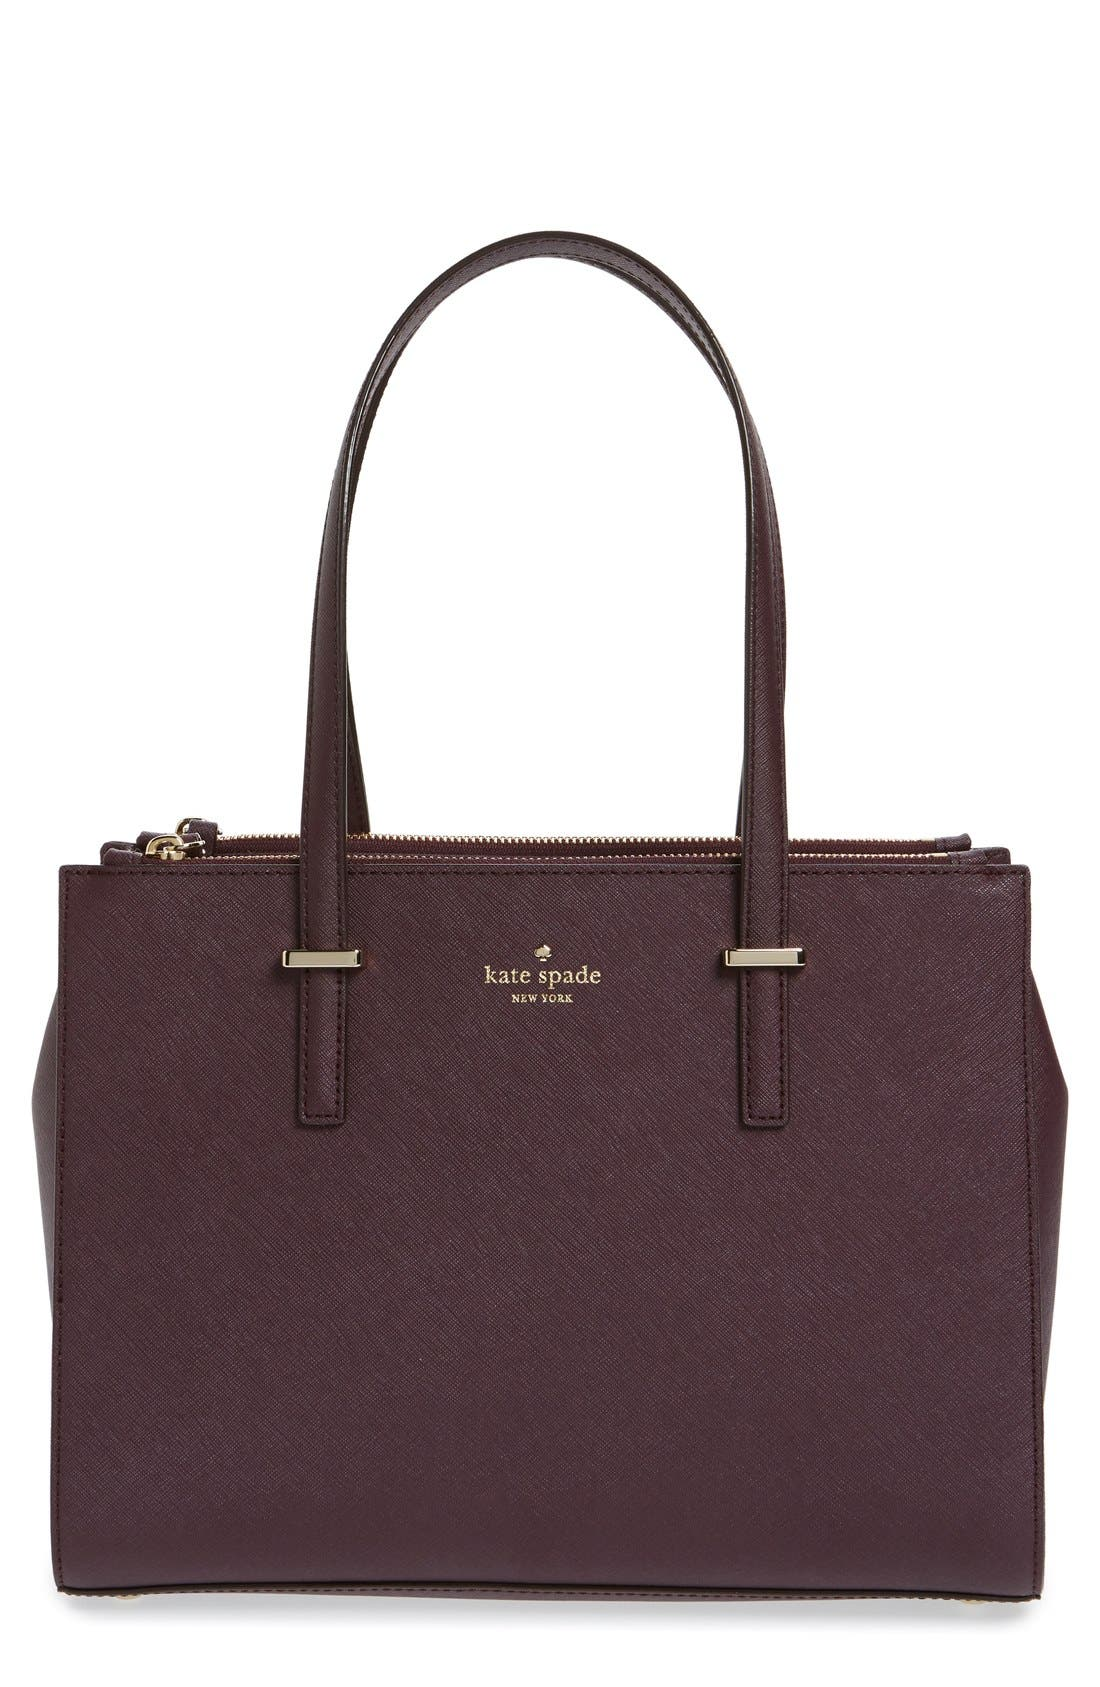 Main Image - kate spade new york 'cedar street - small jensen' leather tote